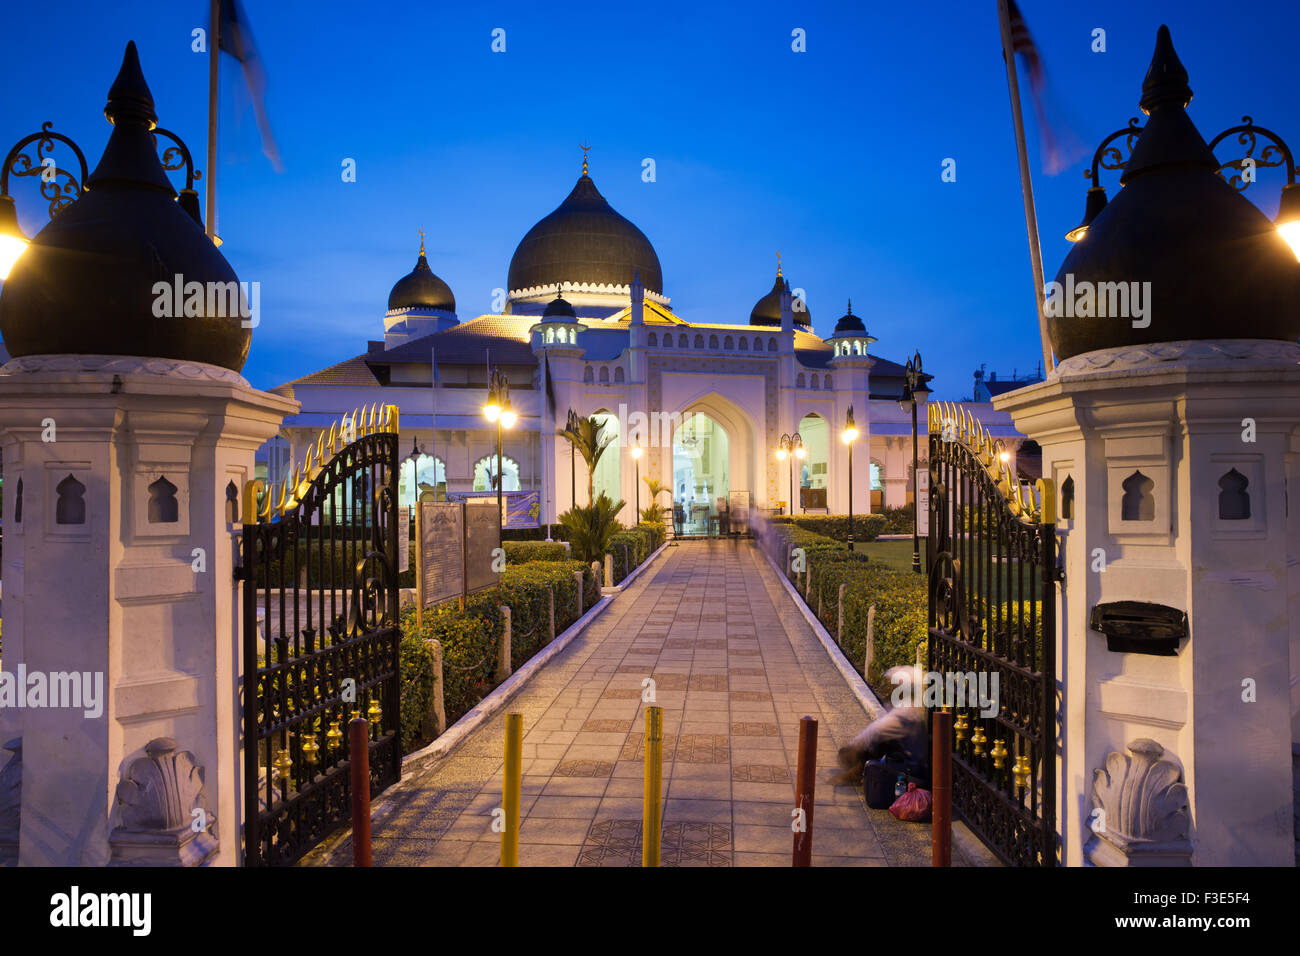 Georgetown, Malaysia — 04 August, 2014: The view of Kapitan Keling Mosque after sunset in Georgetown, Penang, Malaysia Stock Photo